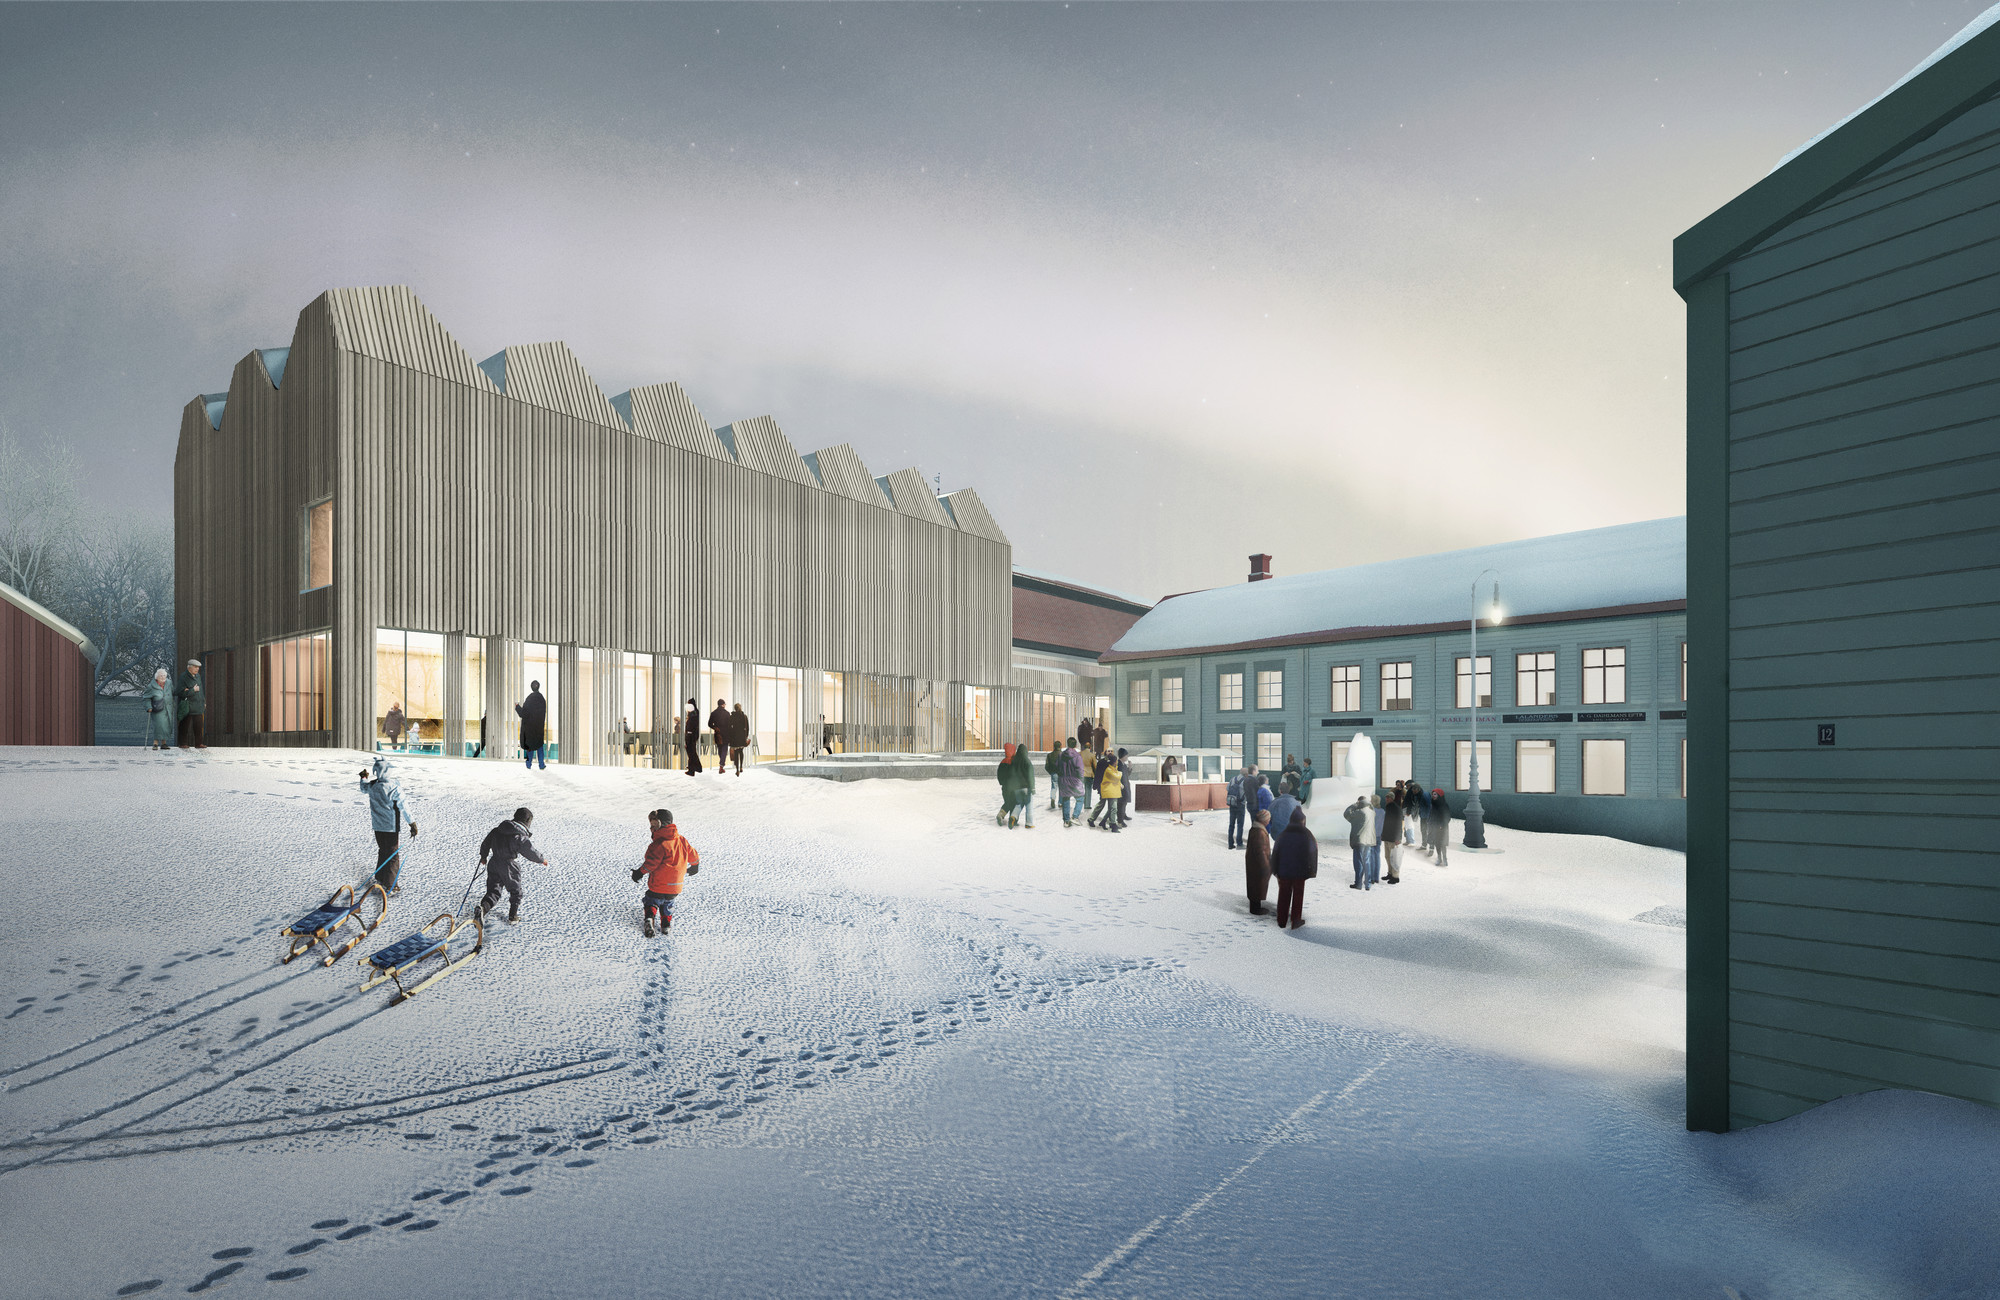 Henning Larsen Designs New Branch of Swedish National Museum, Courtyard. Image © Henning Larsen Architects